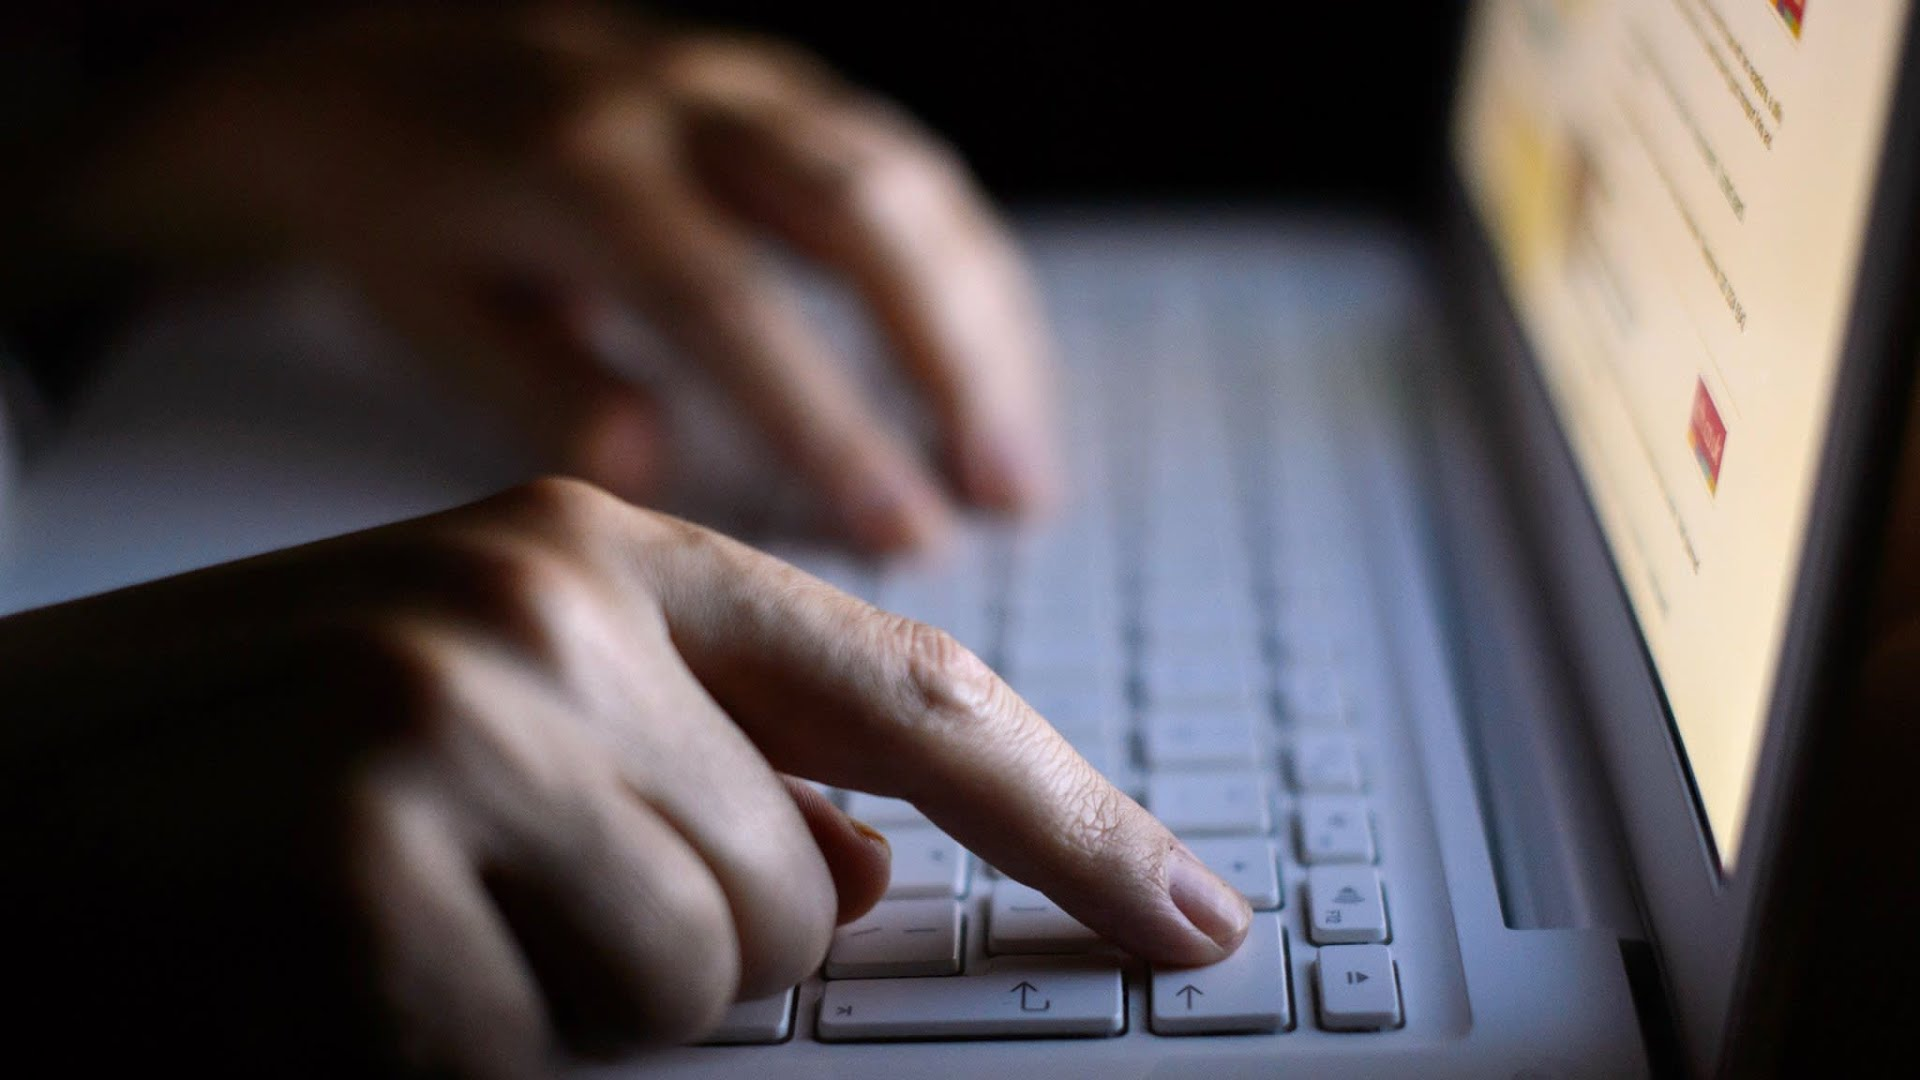 EMBARGOED TO 0001 TUESDAY MAY 30  File photo dated 06/08/13 of a person using a laptop, as cyber crime and political upheaval are the two biggest financial crime risks facing banks over the next year, a report said. PRESS ASSOCIATION Photo. Issue date: Tuesday May 30, 2017. A survey of 200 professionals across banking and asset management found 44% felt new criminal techniques, like cyber crime, posed the largest threat to firms. See PA story CITY Cyber. Photo credit should read: Dominic Lipinski/PA Wire